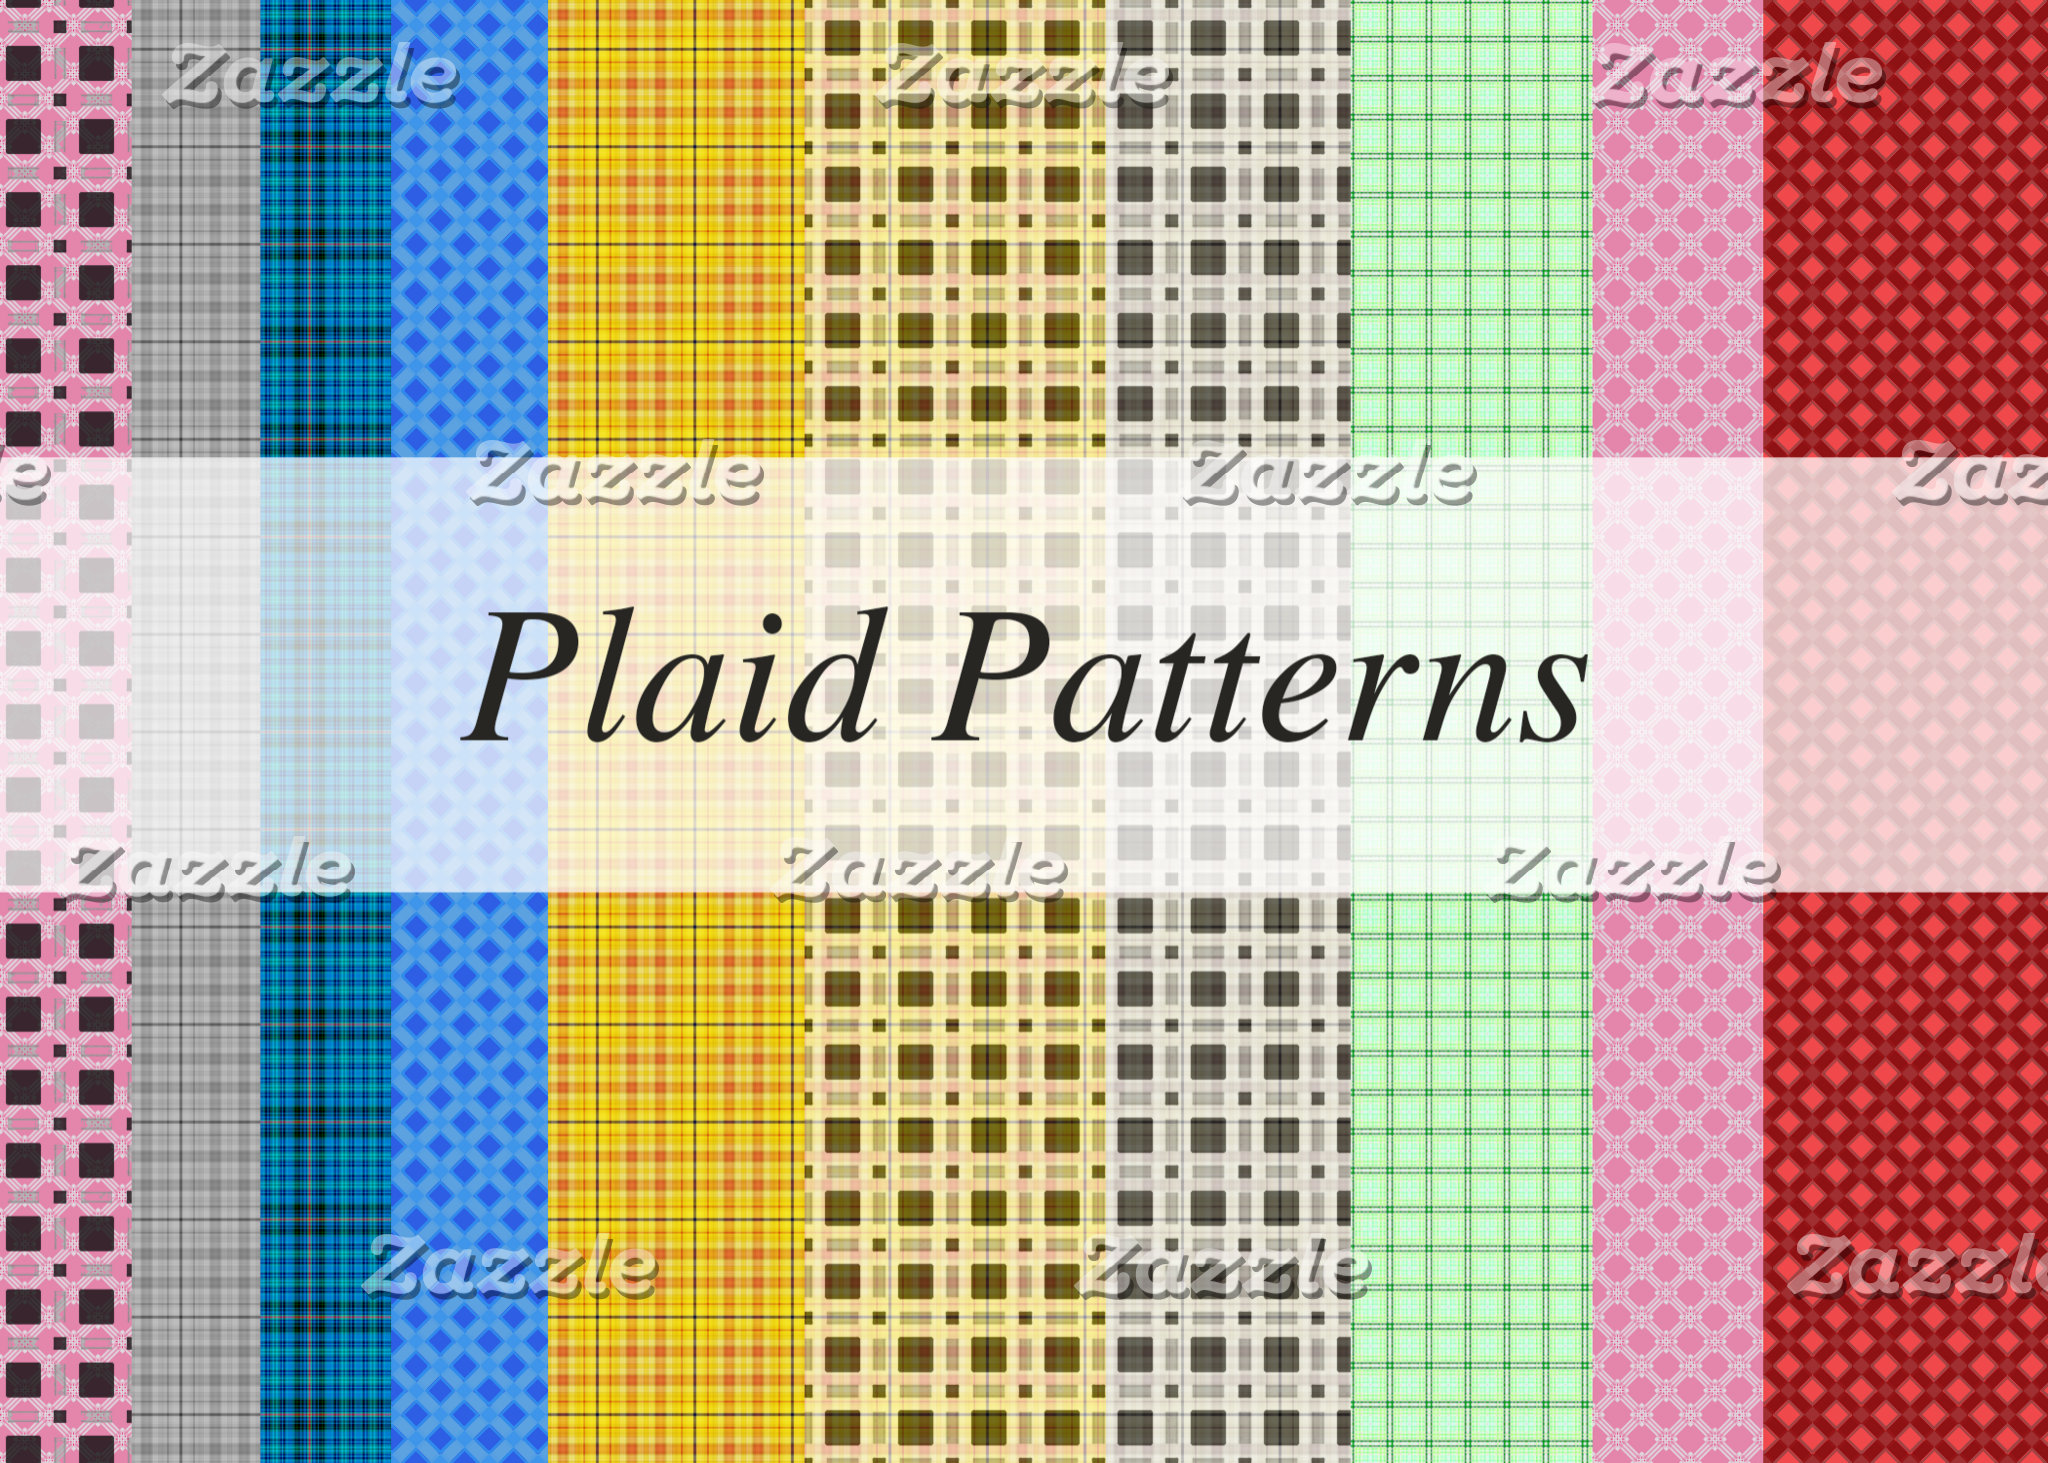 Plaid Patterns